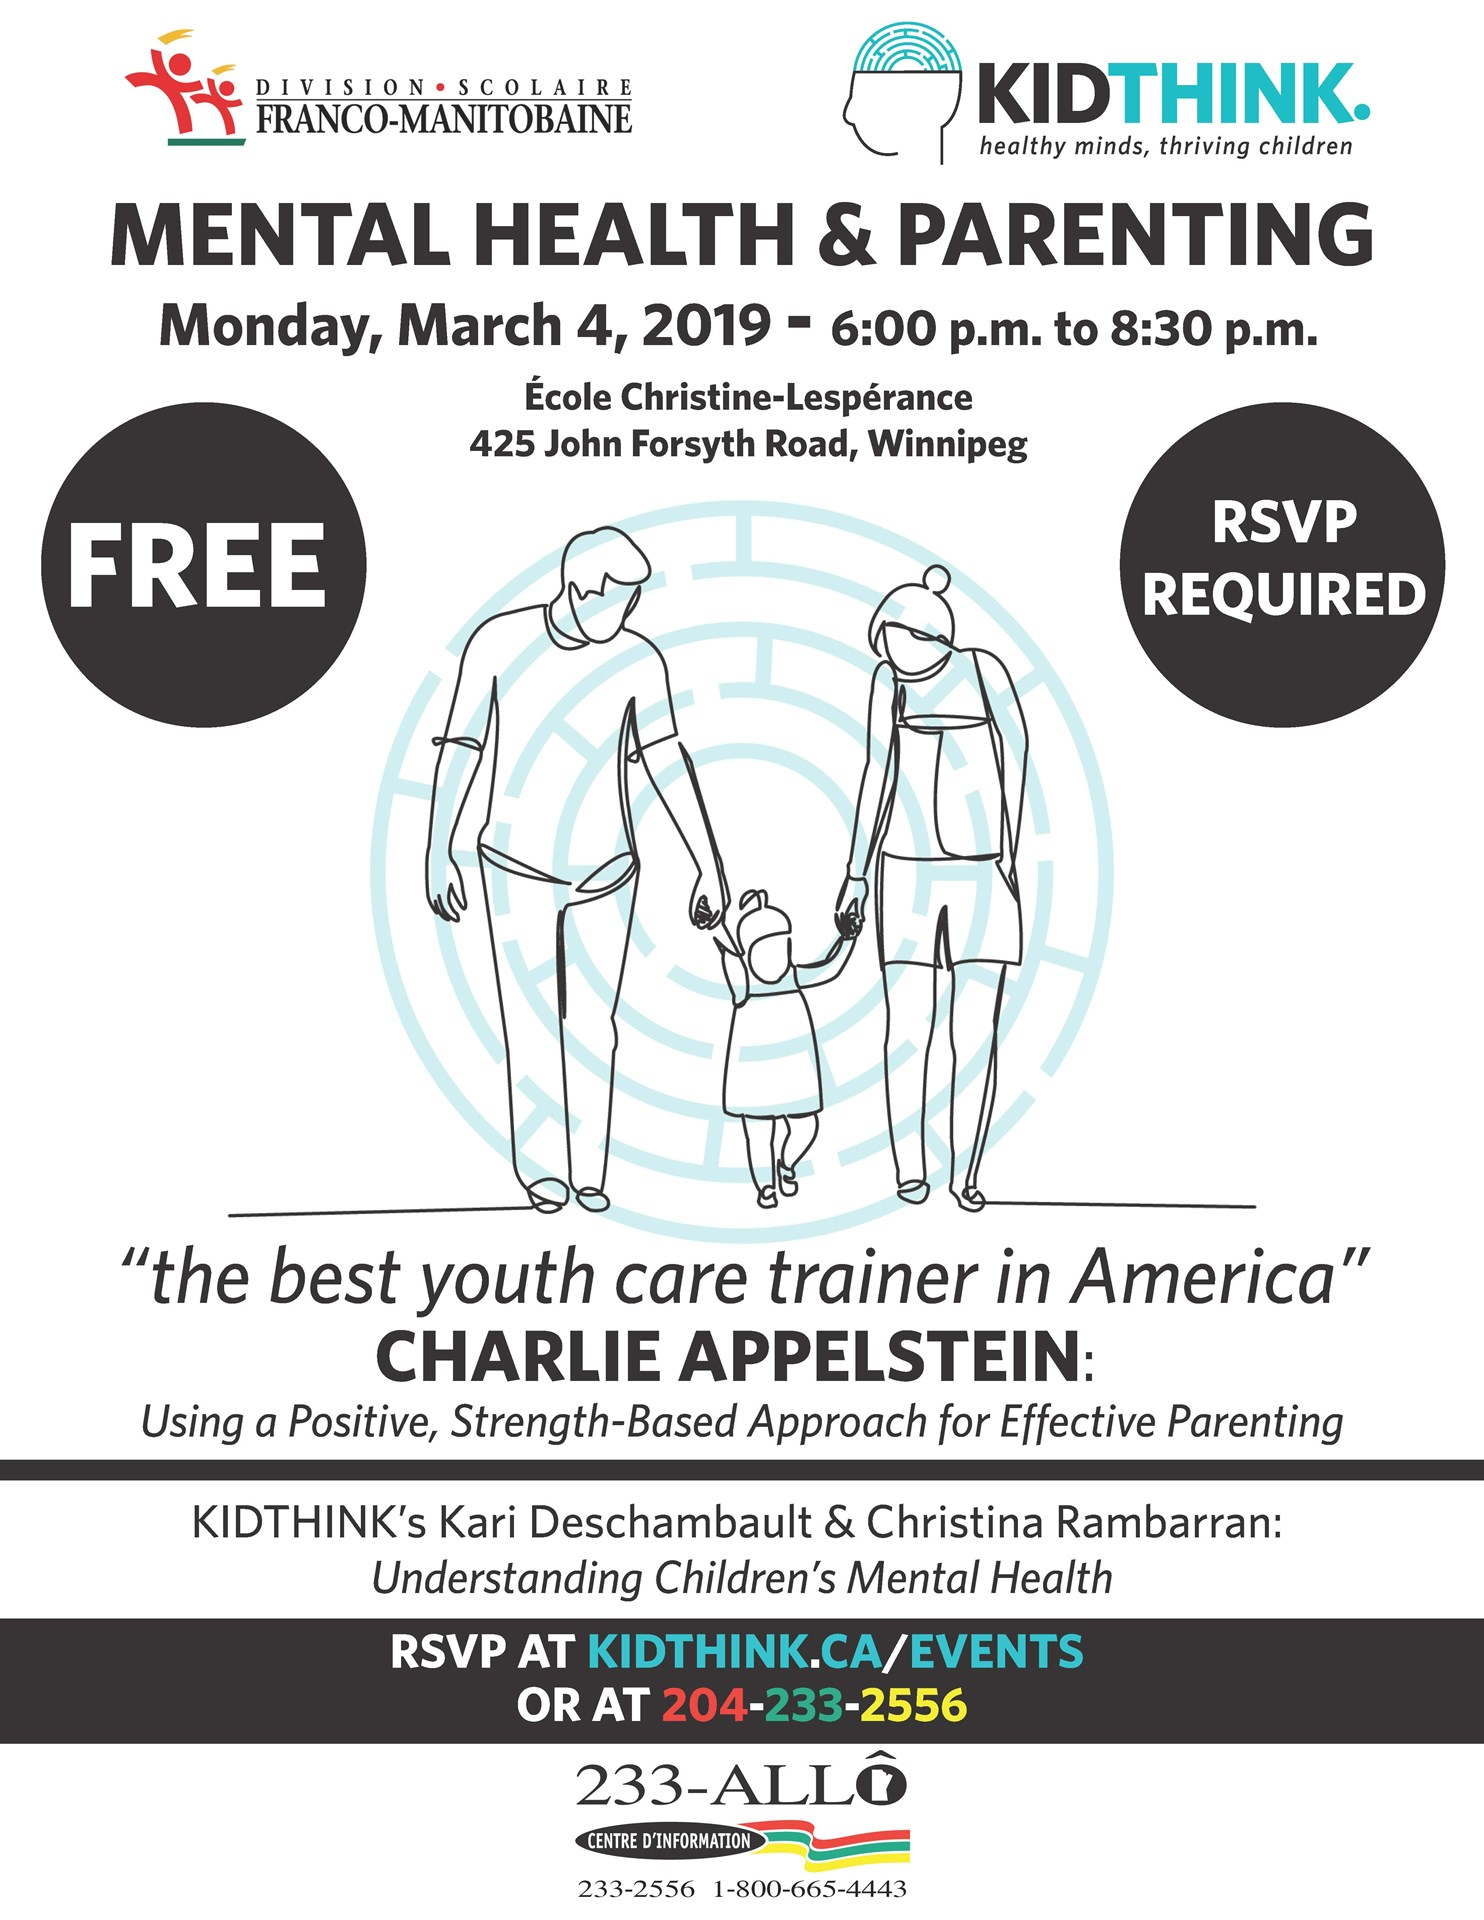 Mental Health and Parenting Poster 2.6.19.jpg